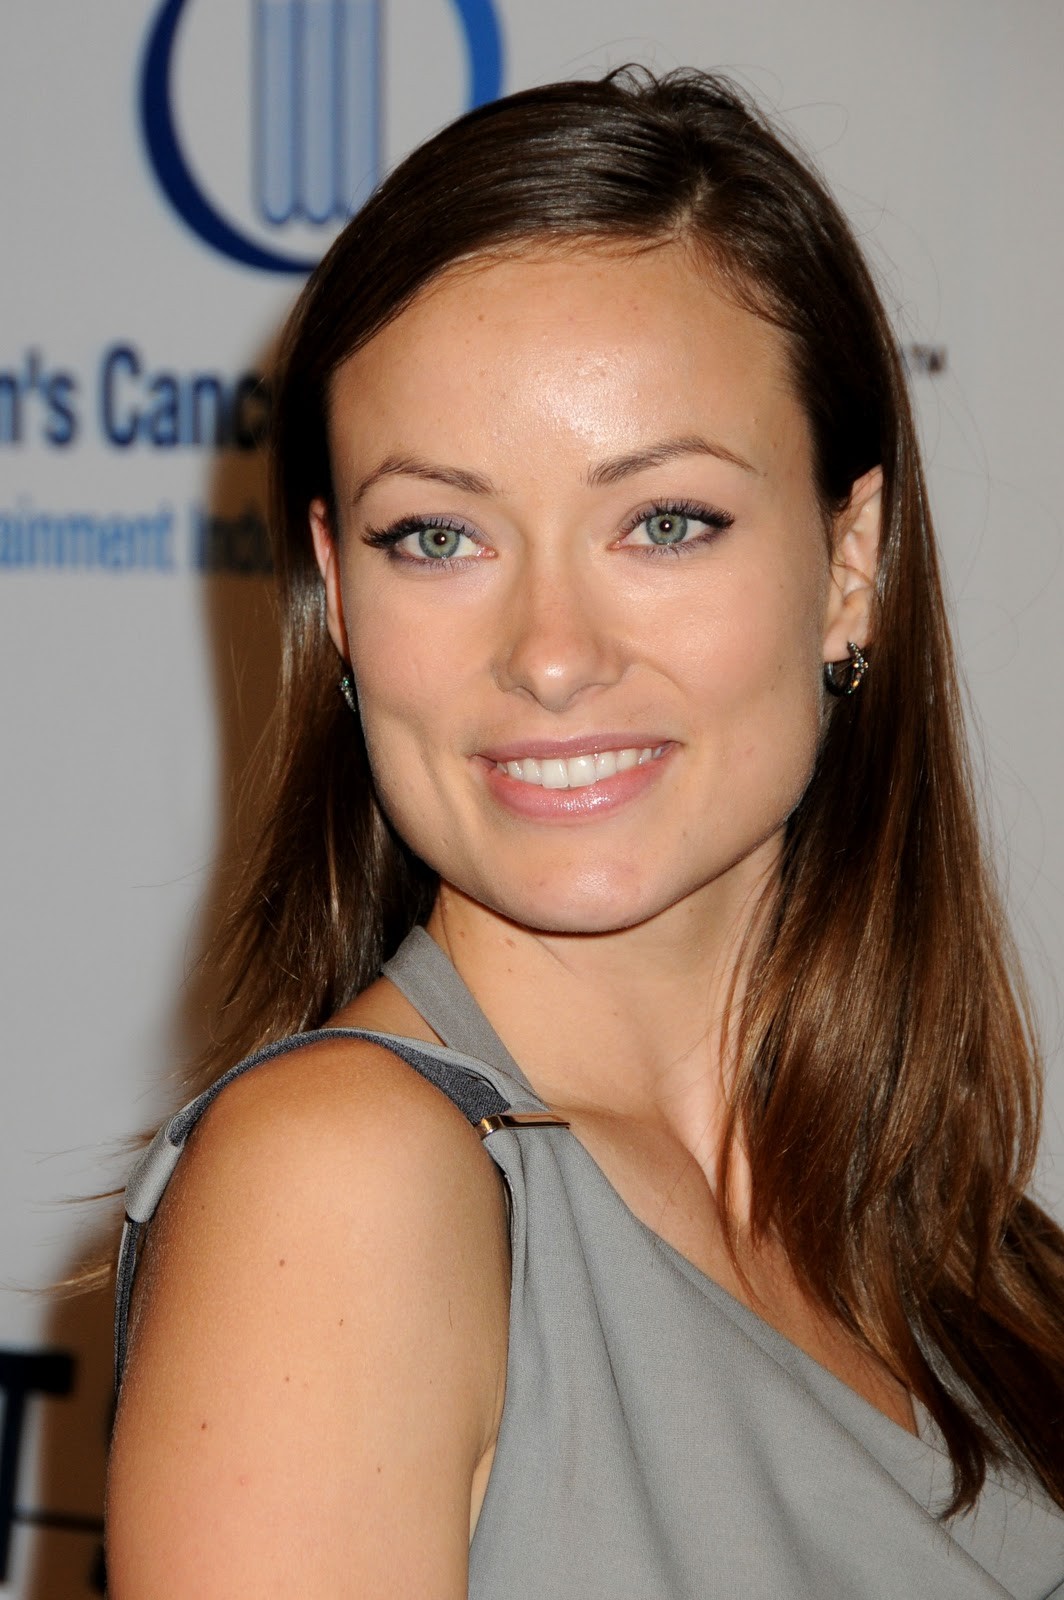 Olivia Wilde Profile And New Pictures 2013: Olivia Wilde Special Pictures (23)